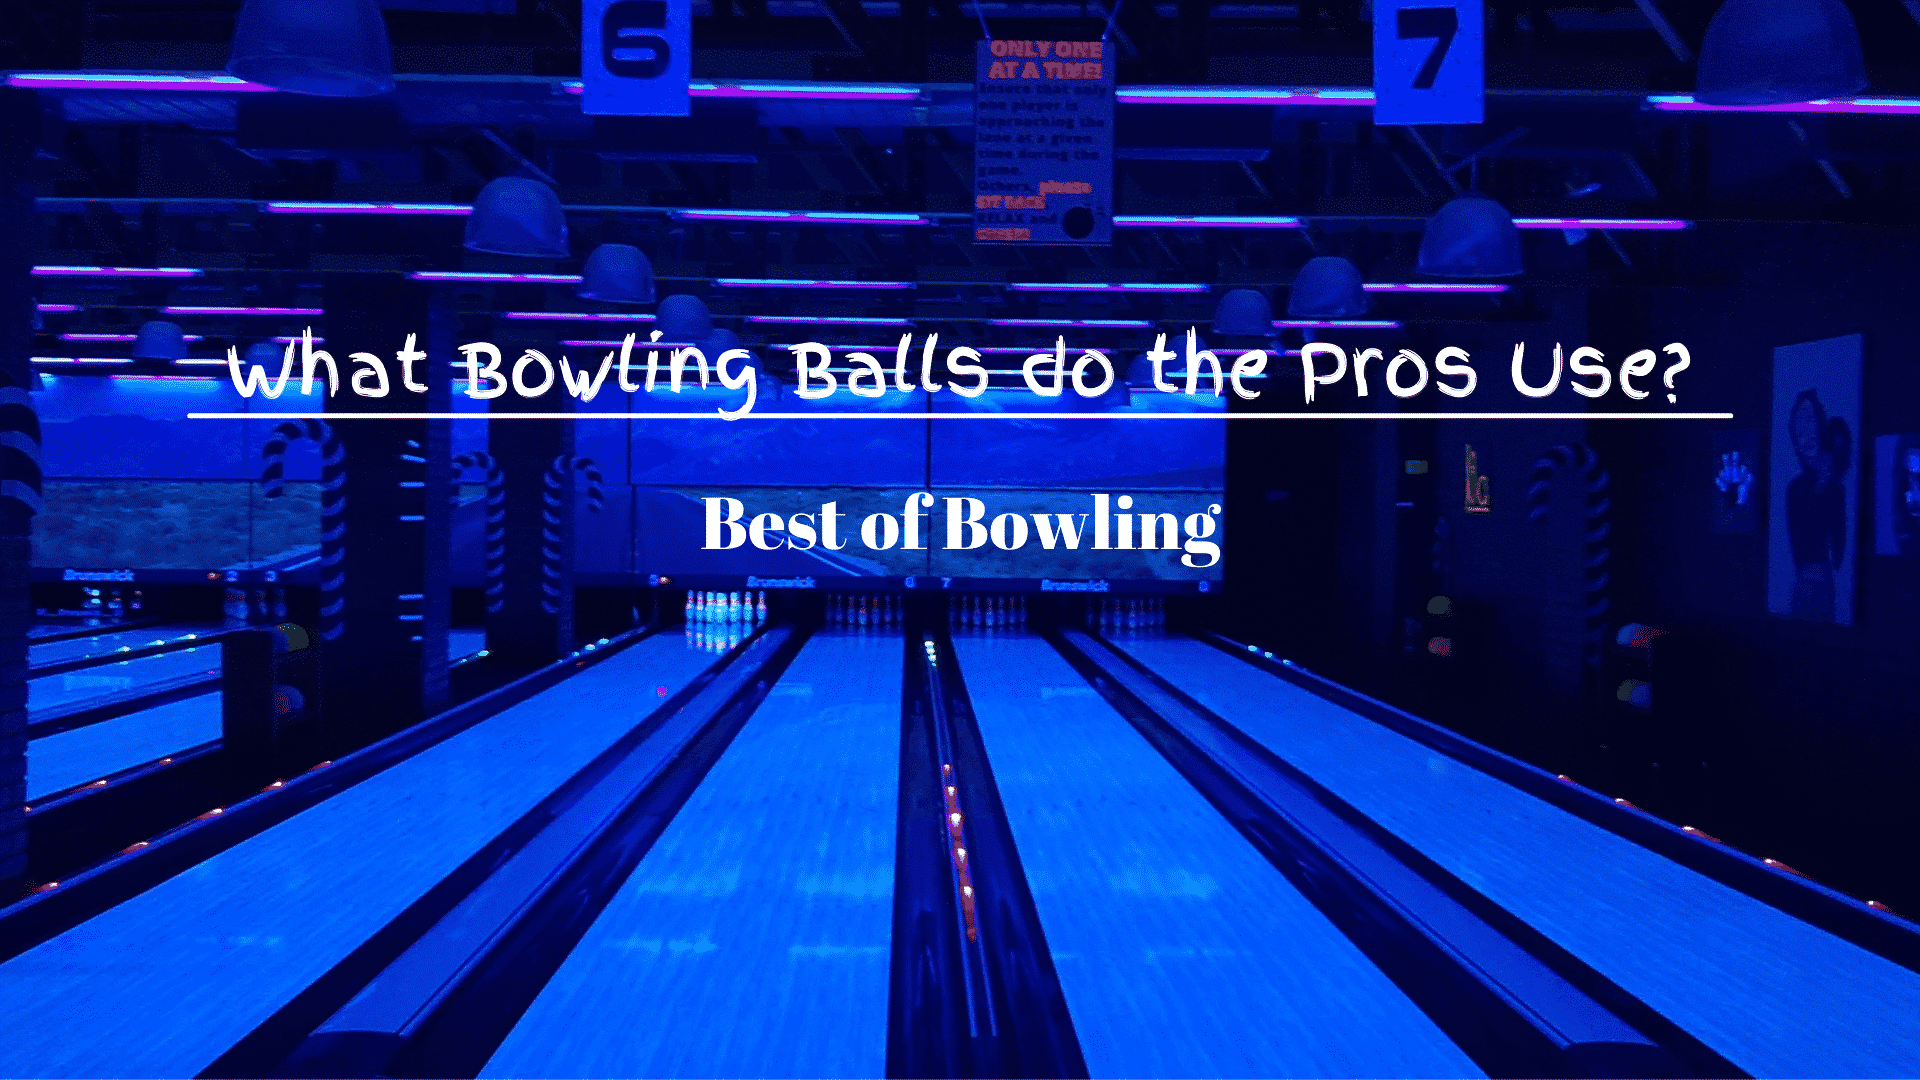 What Bowling Balls do the Pros Use